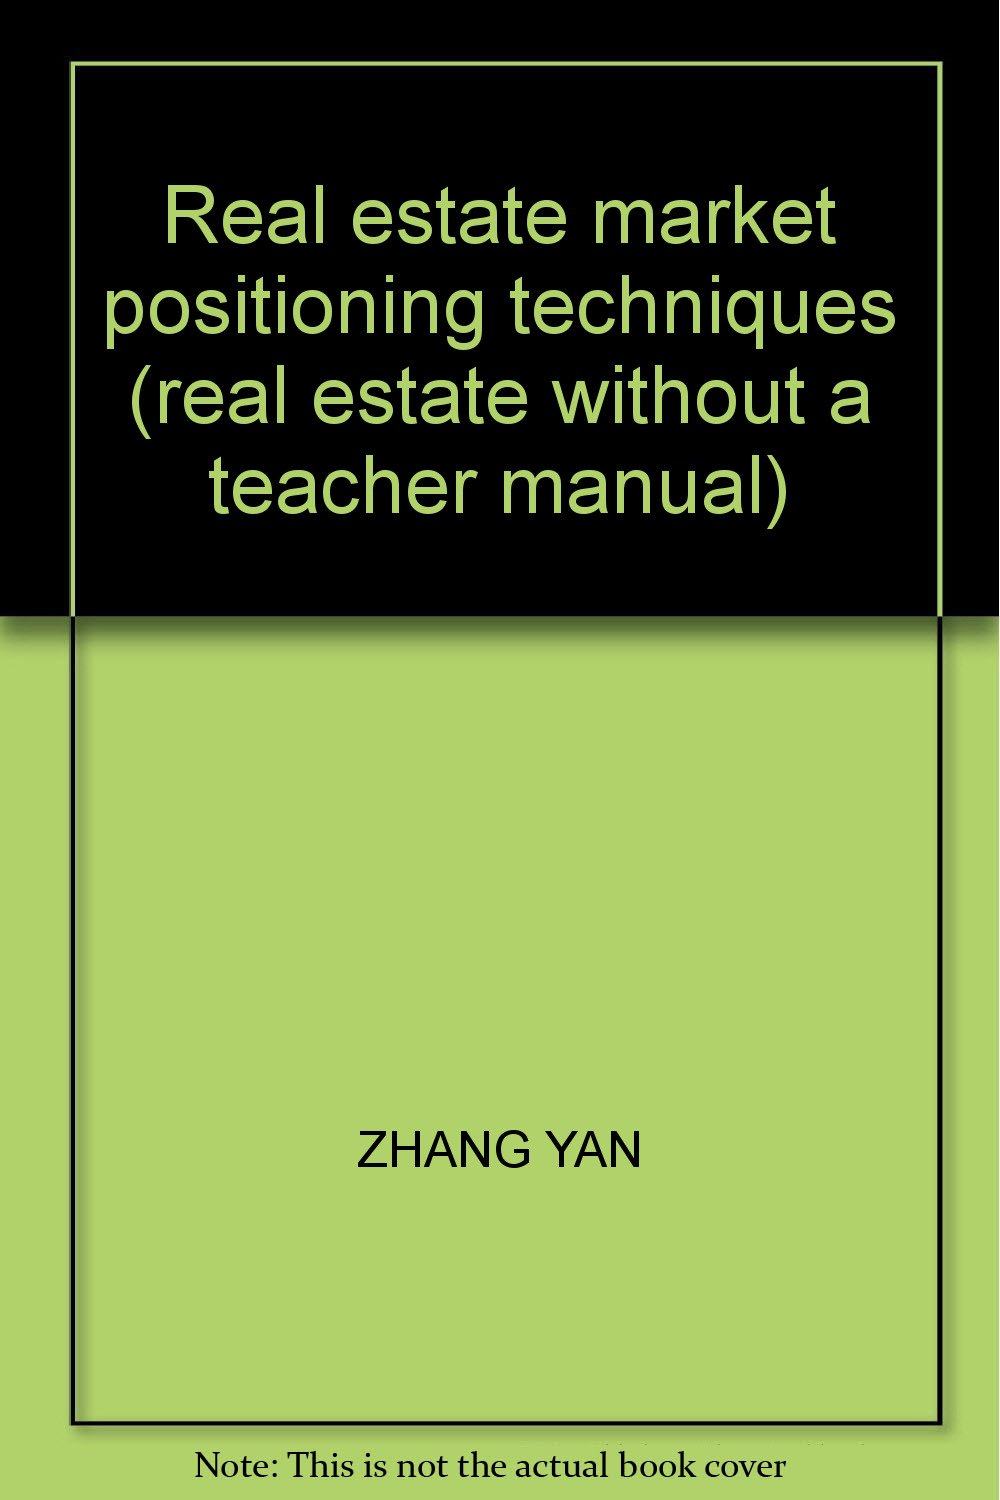 Download Real estate market positioning techniques (real estate without a teacher manual) ebook